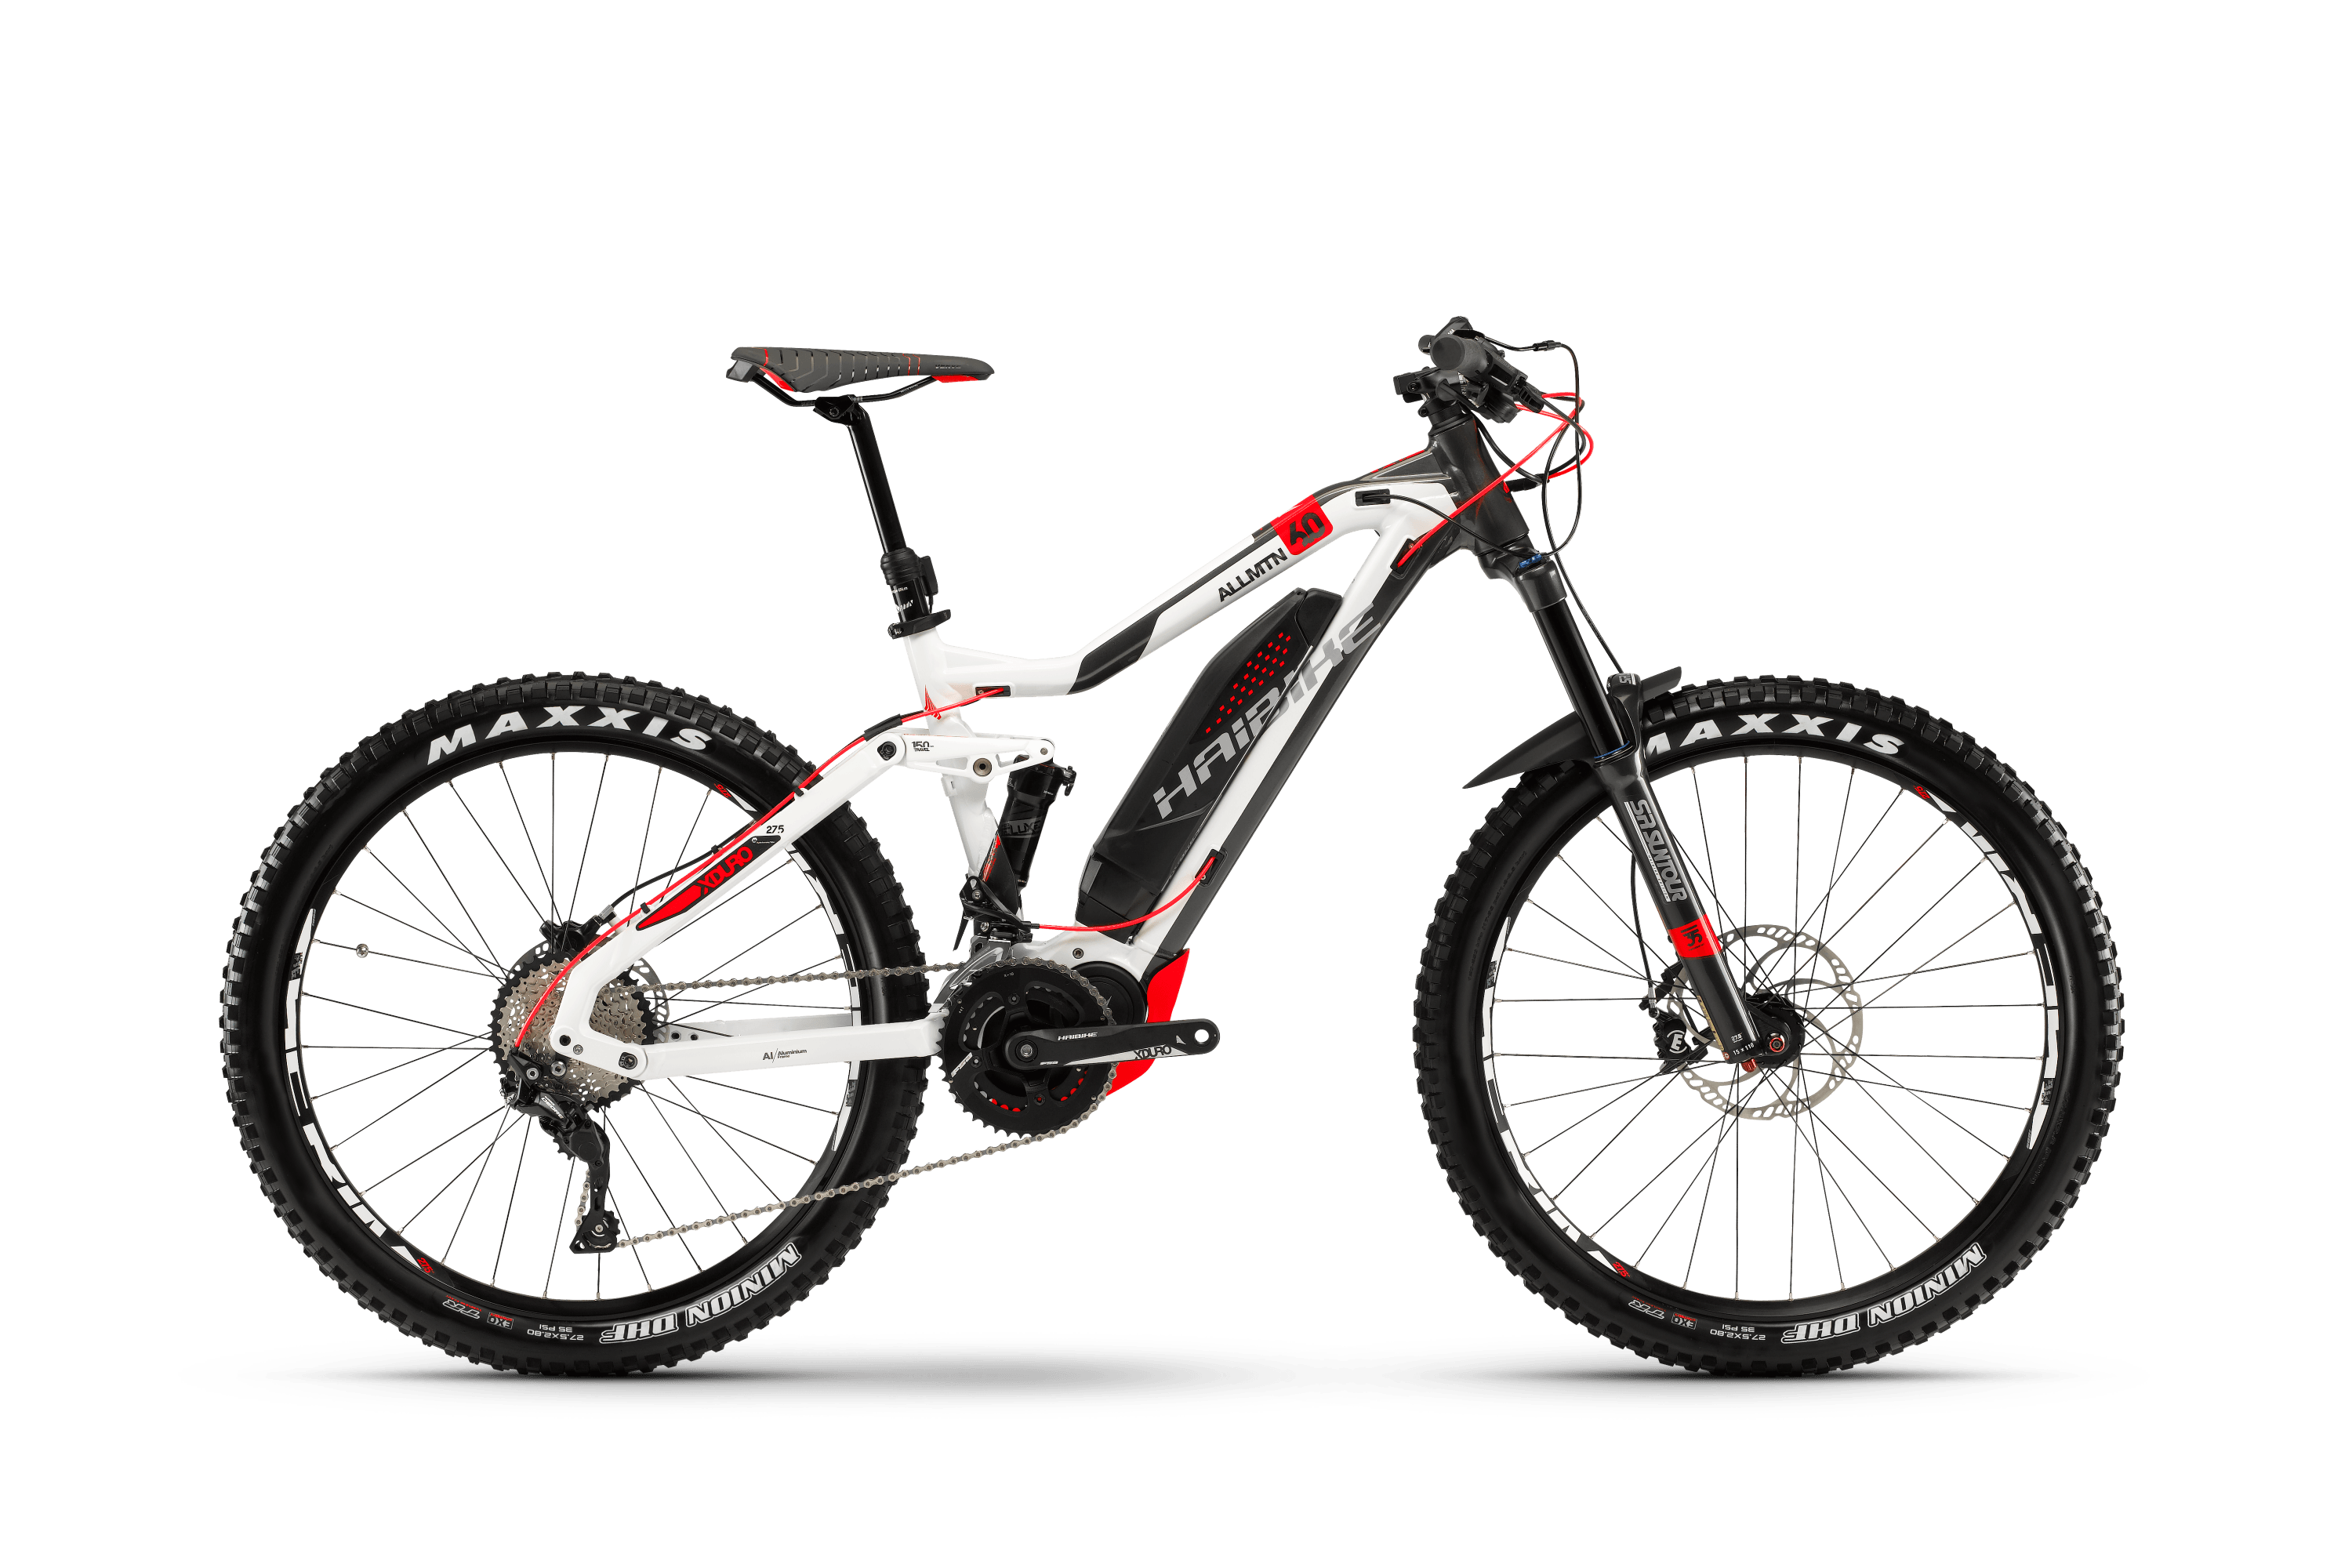 E-bike or bike rental